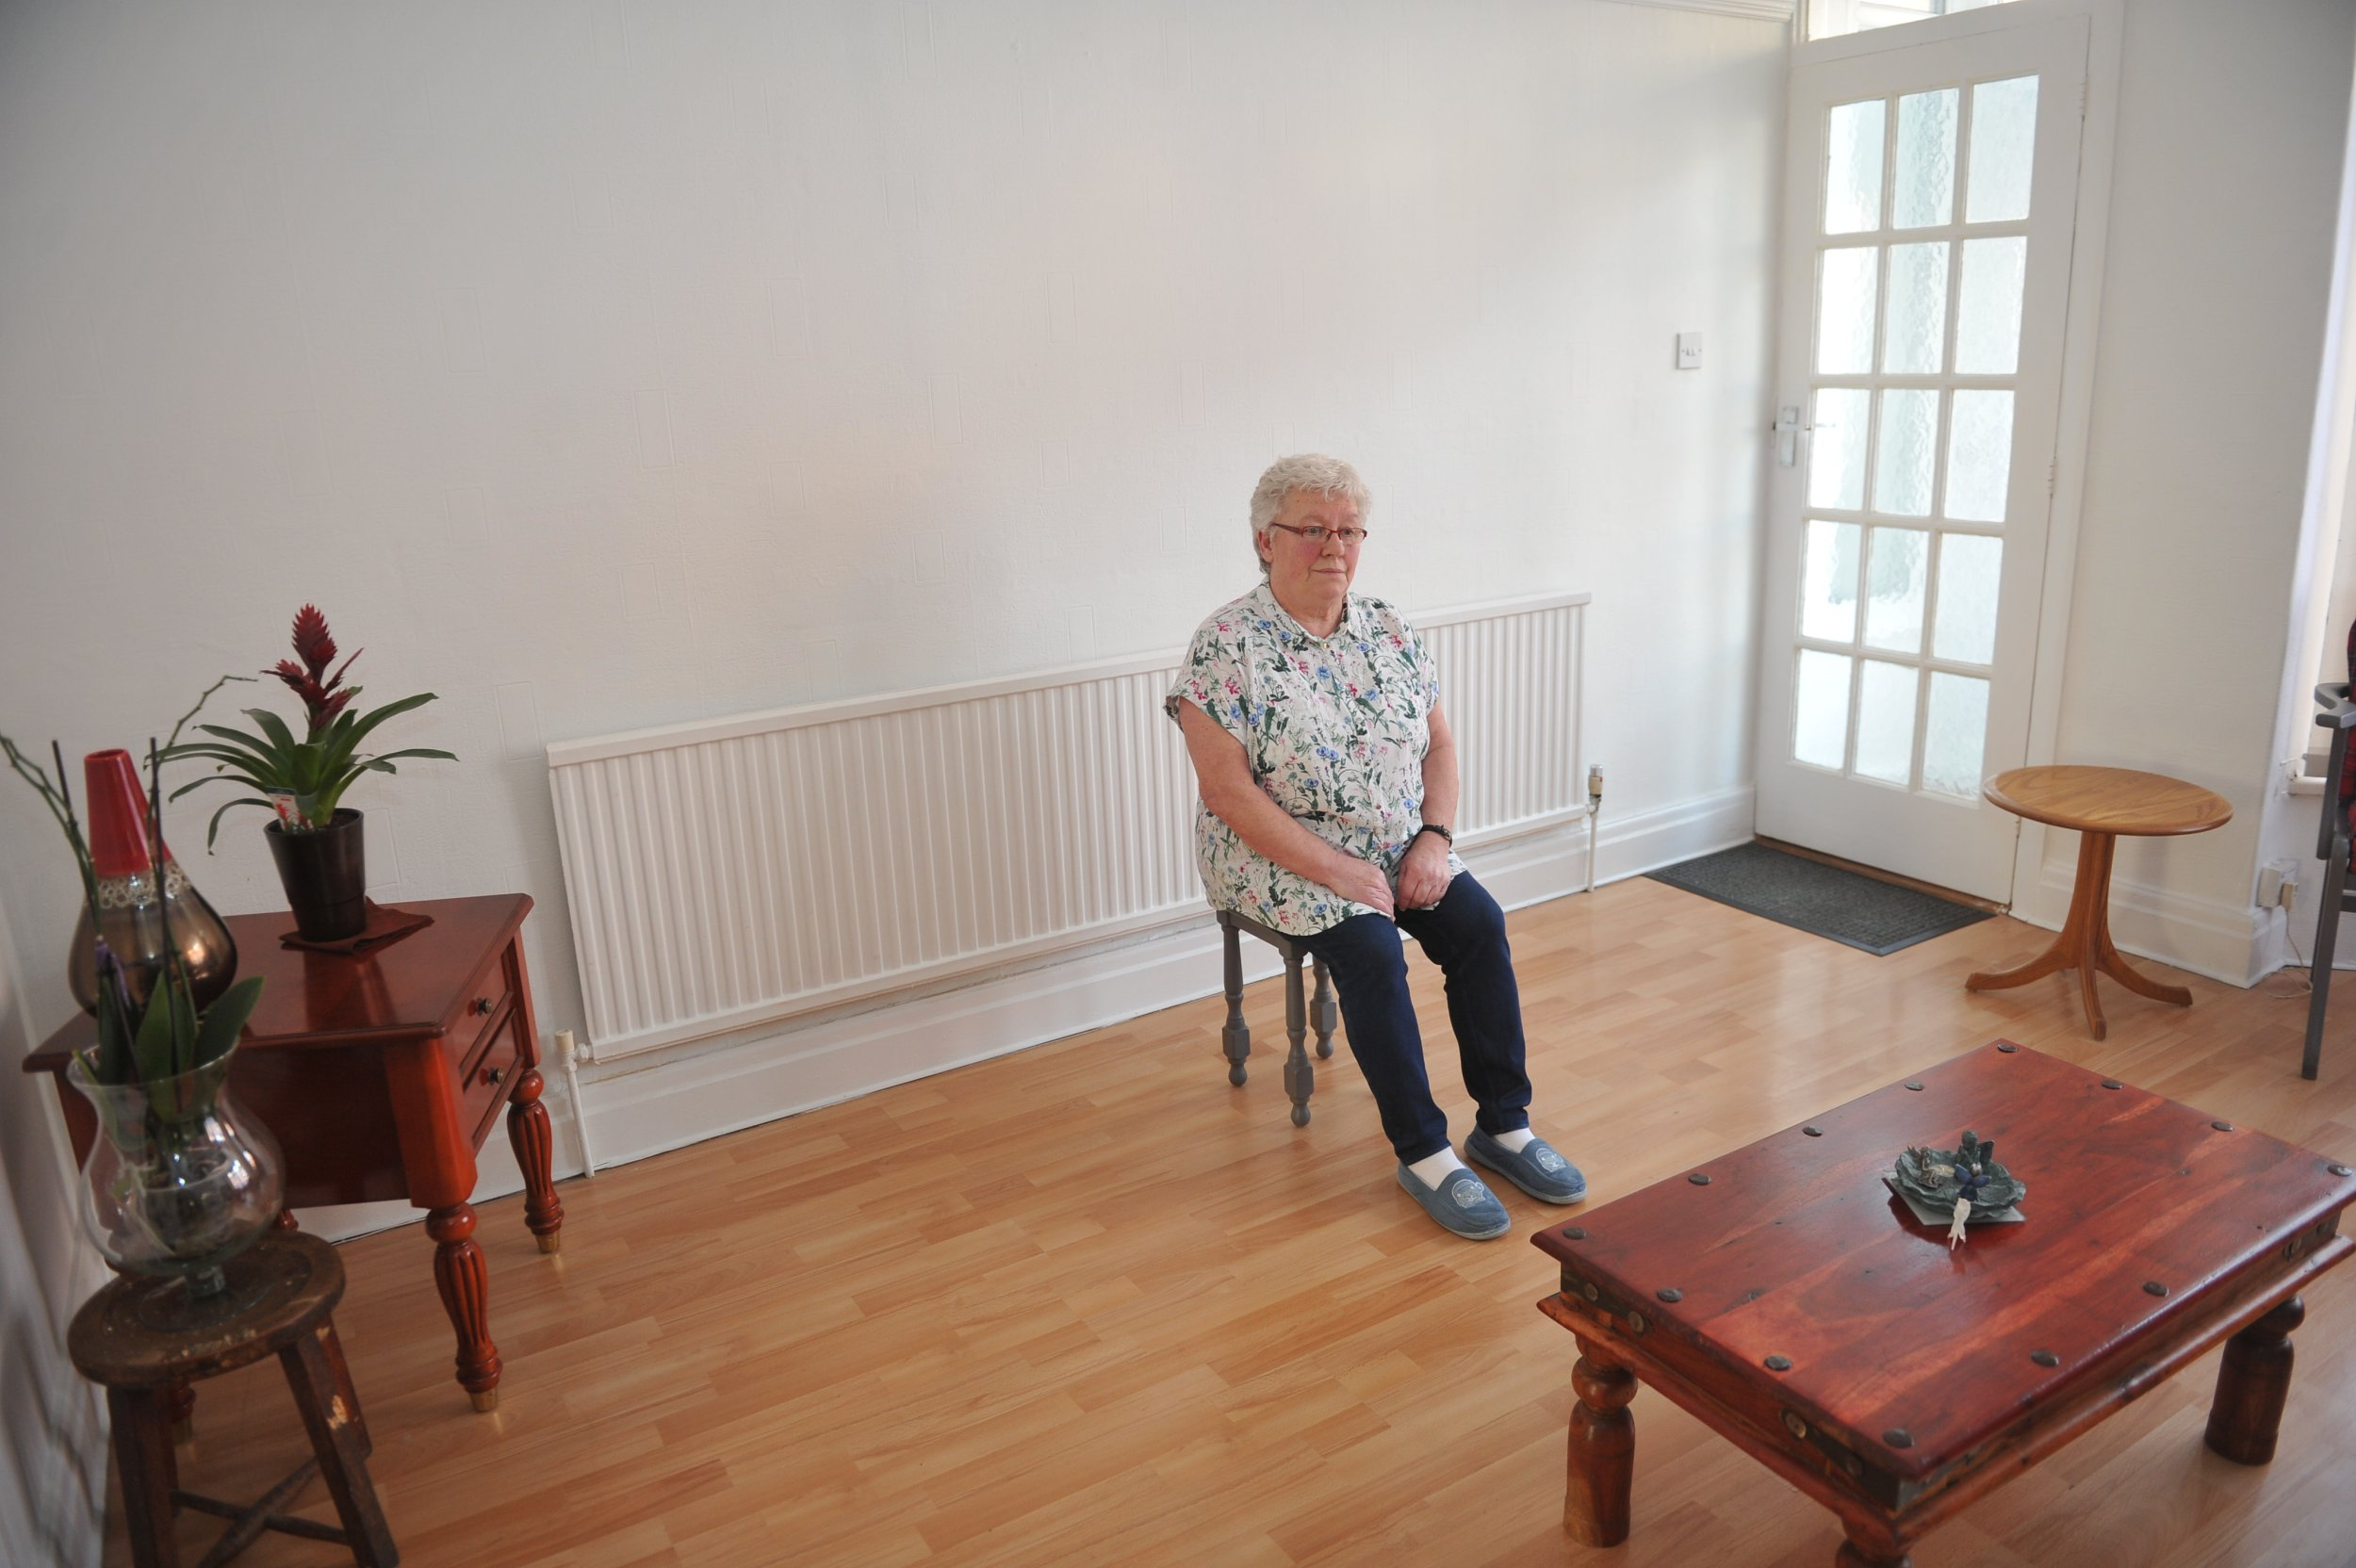 Gran's anger at being made to wait two months for sofa 'that keeps going missing'